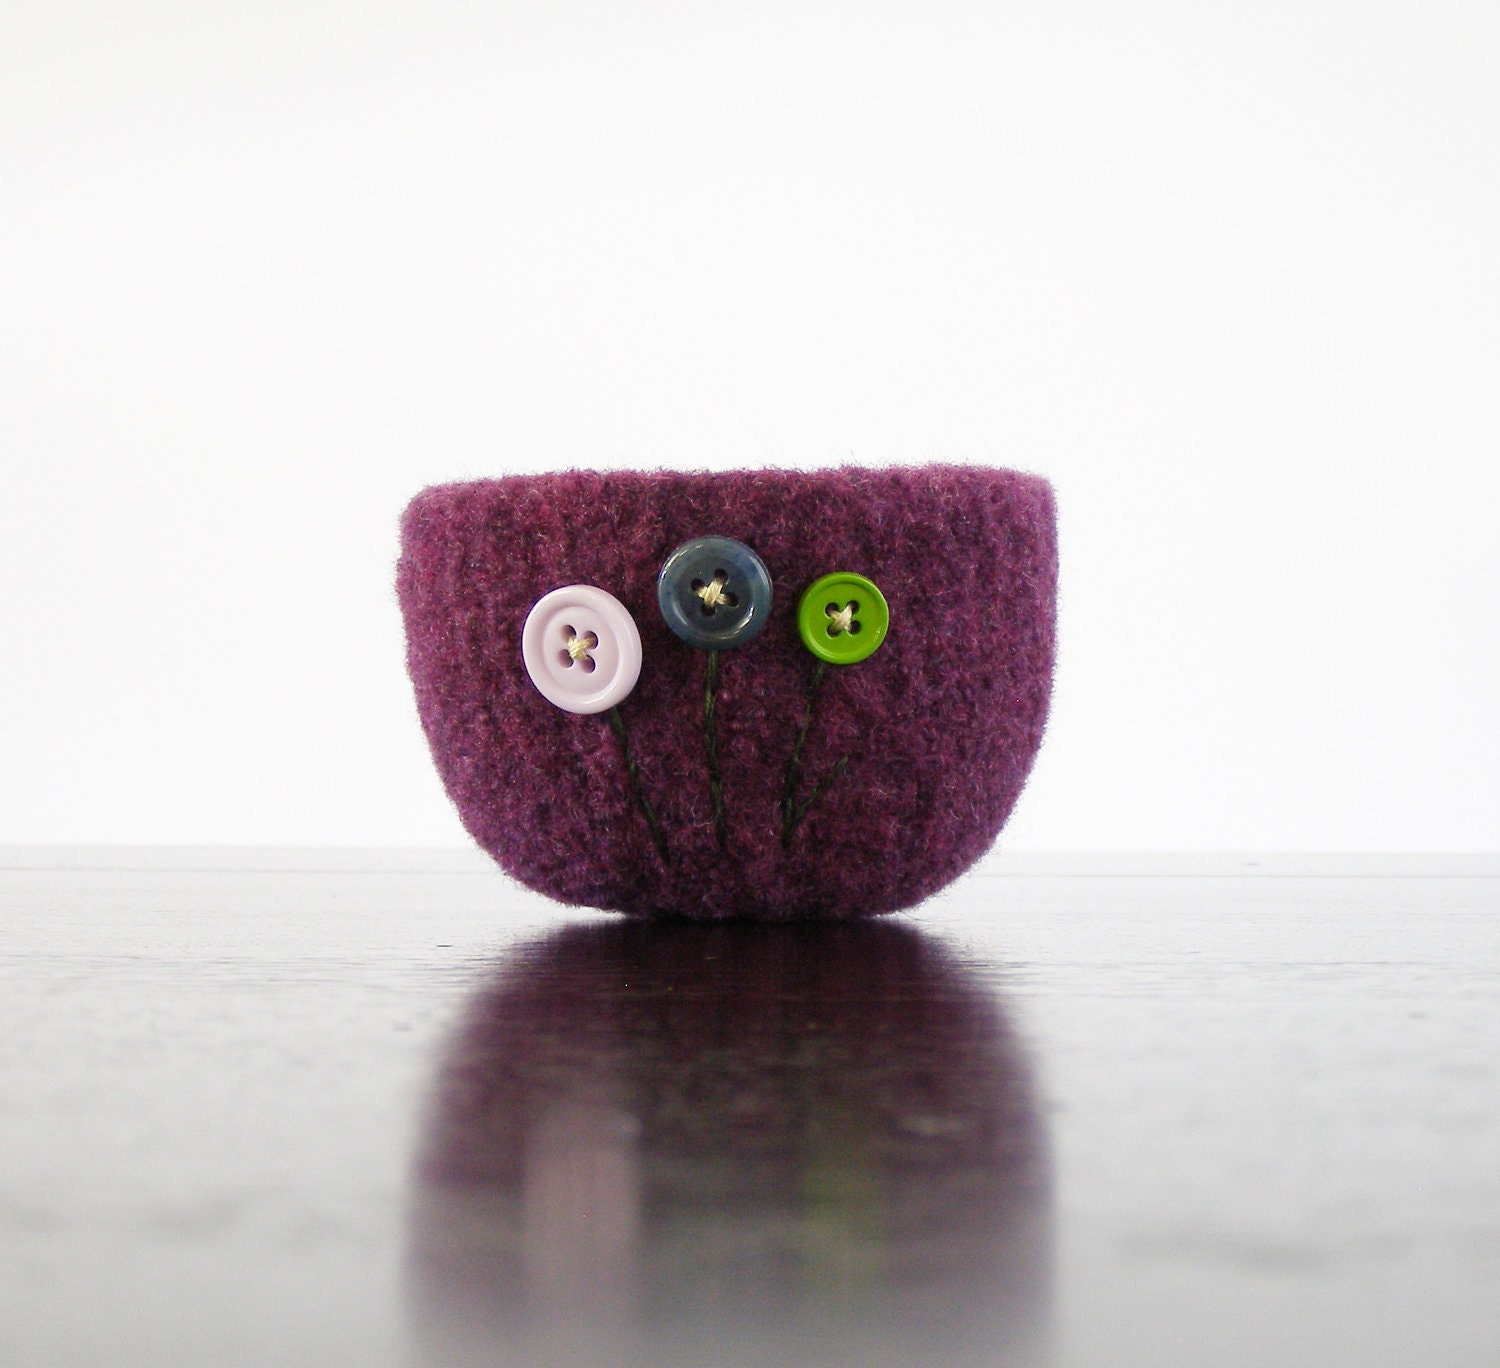 felted wool bowl -  plum purple wool felt bowl with lavender, blue, and green flowers - ring holder, desk organizer, gifts under 20 25 - theFelterie